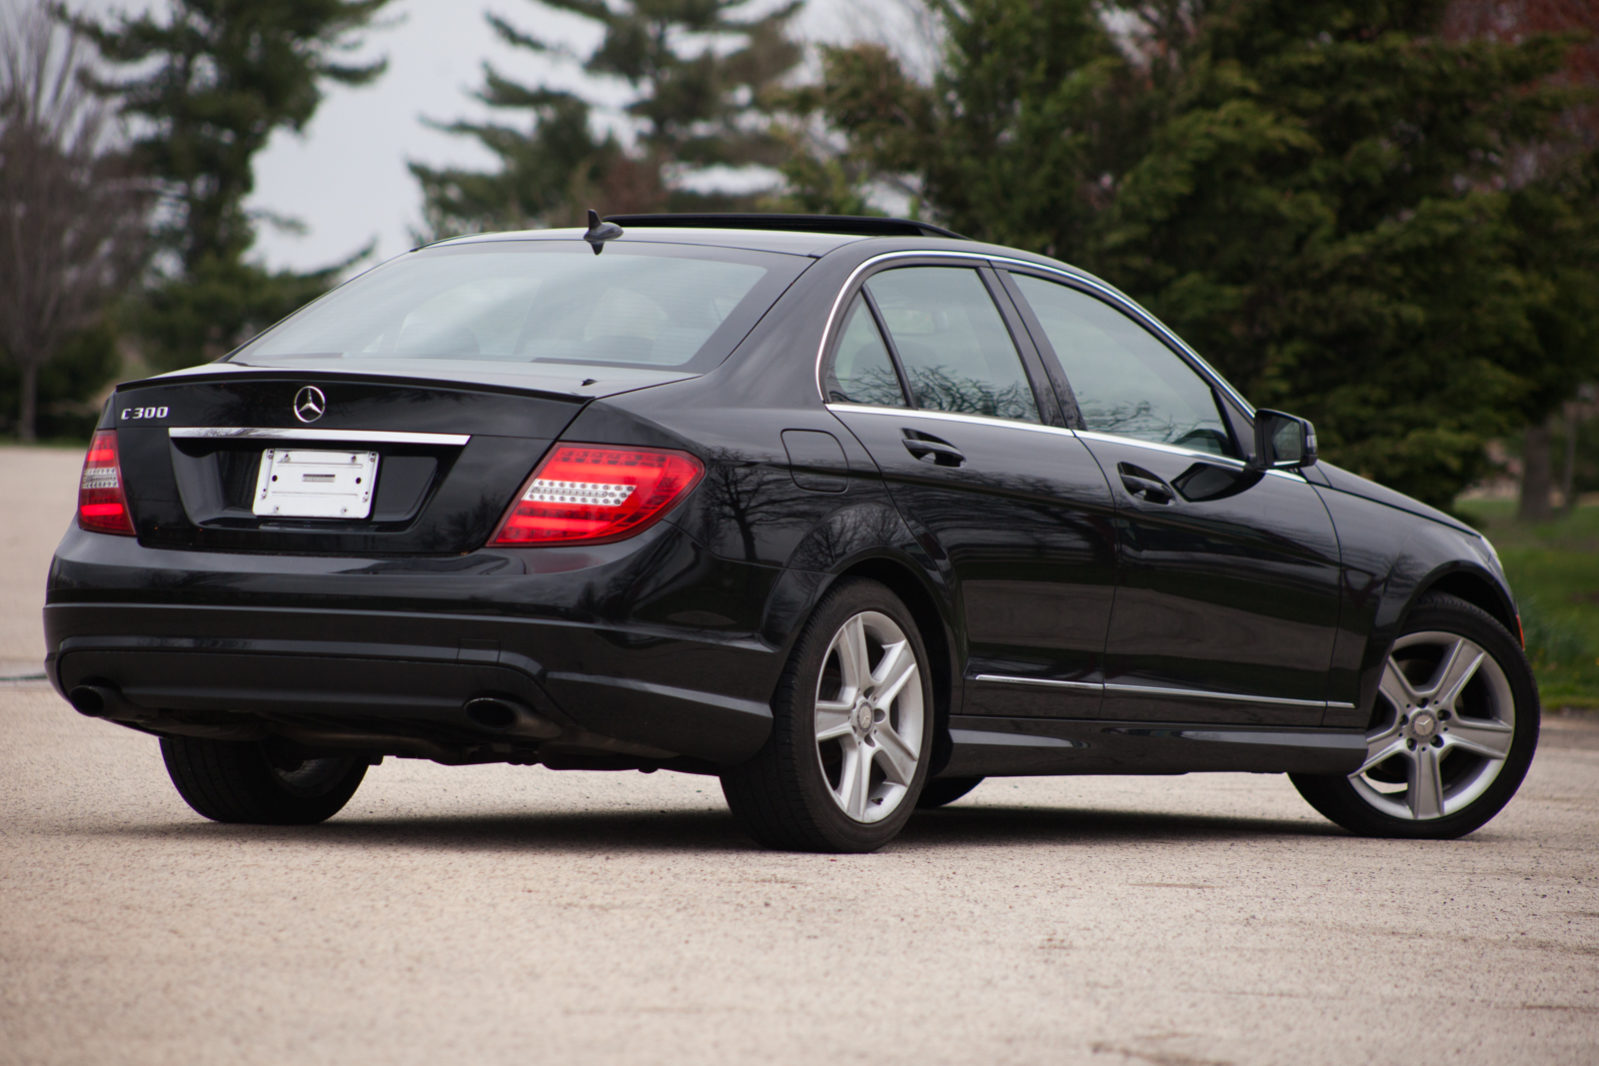 2010 Used Mercedes-Benz C300 For Sale | Car Dealership in ...